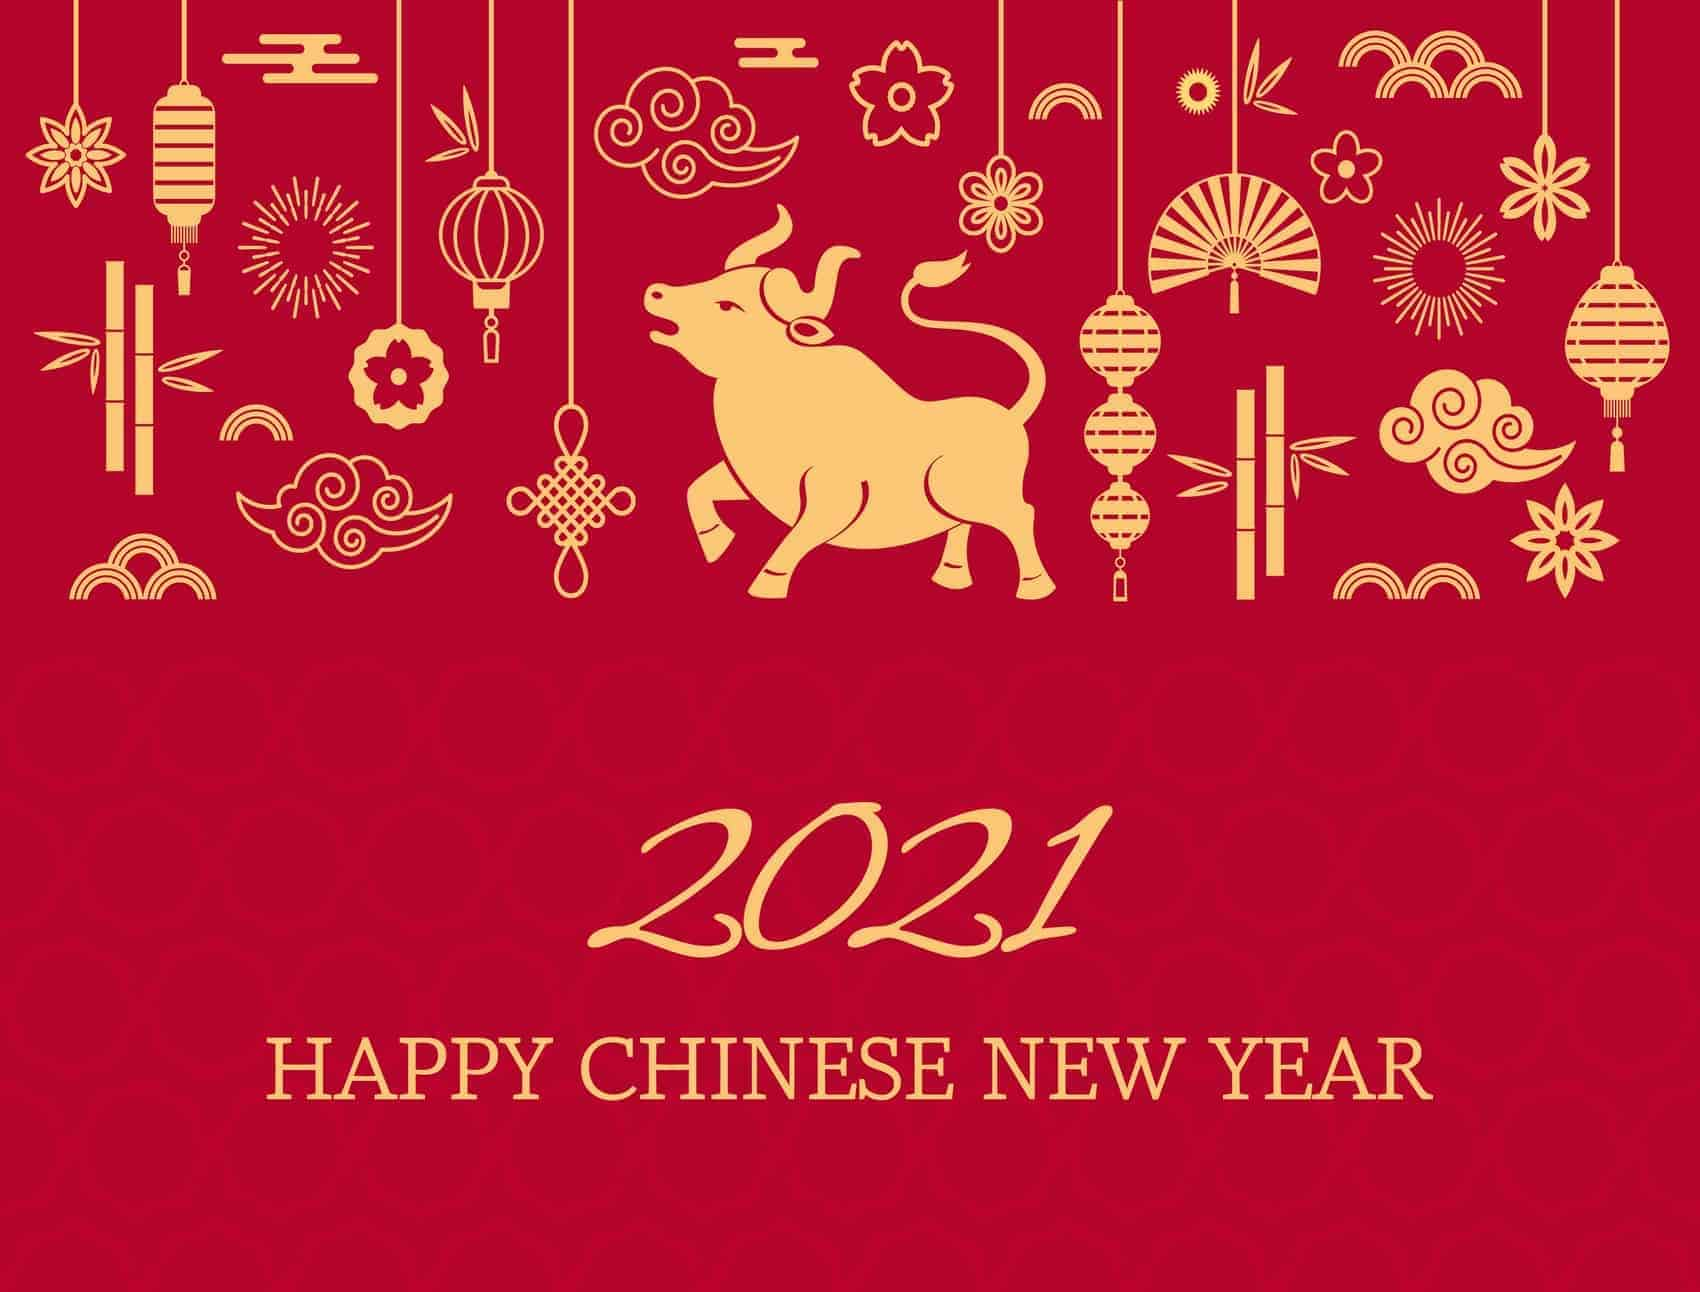 Happy chinese new year. 2021 the white metal ox is a symbol of 2021, the Chinese New Year